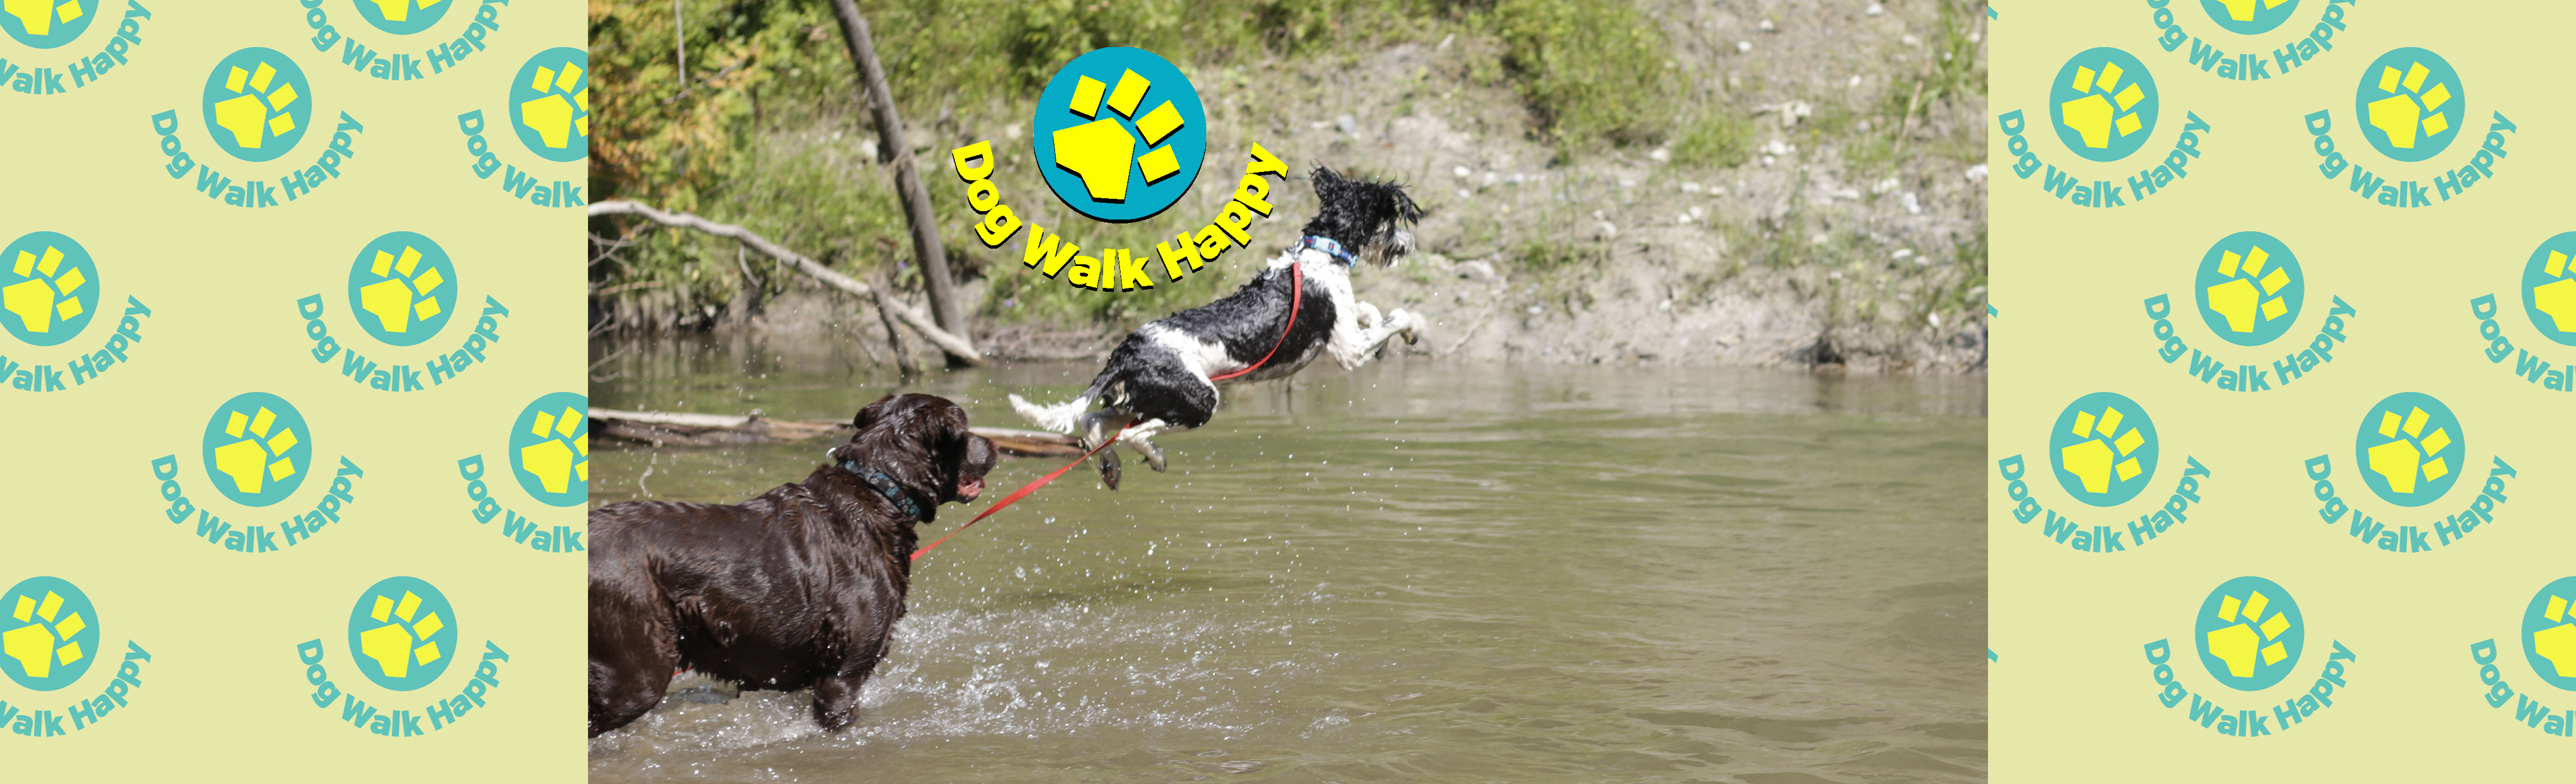 wix bnr dogs in water